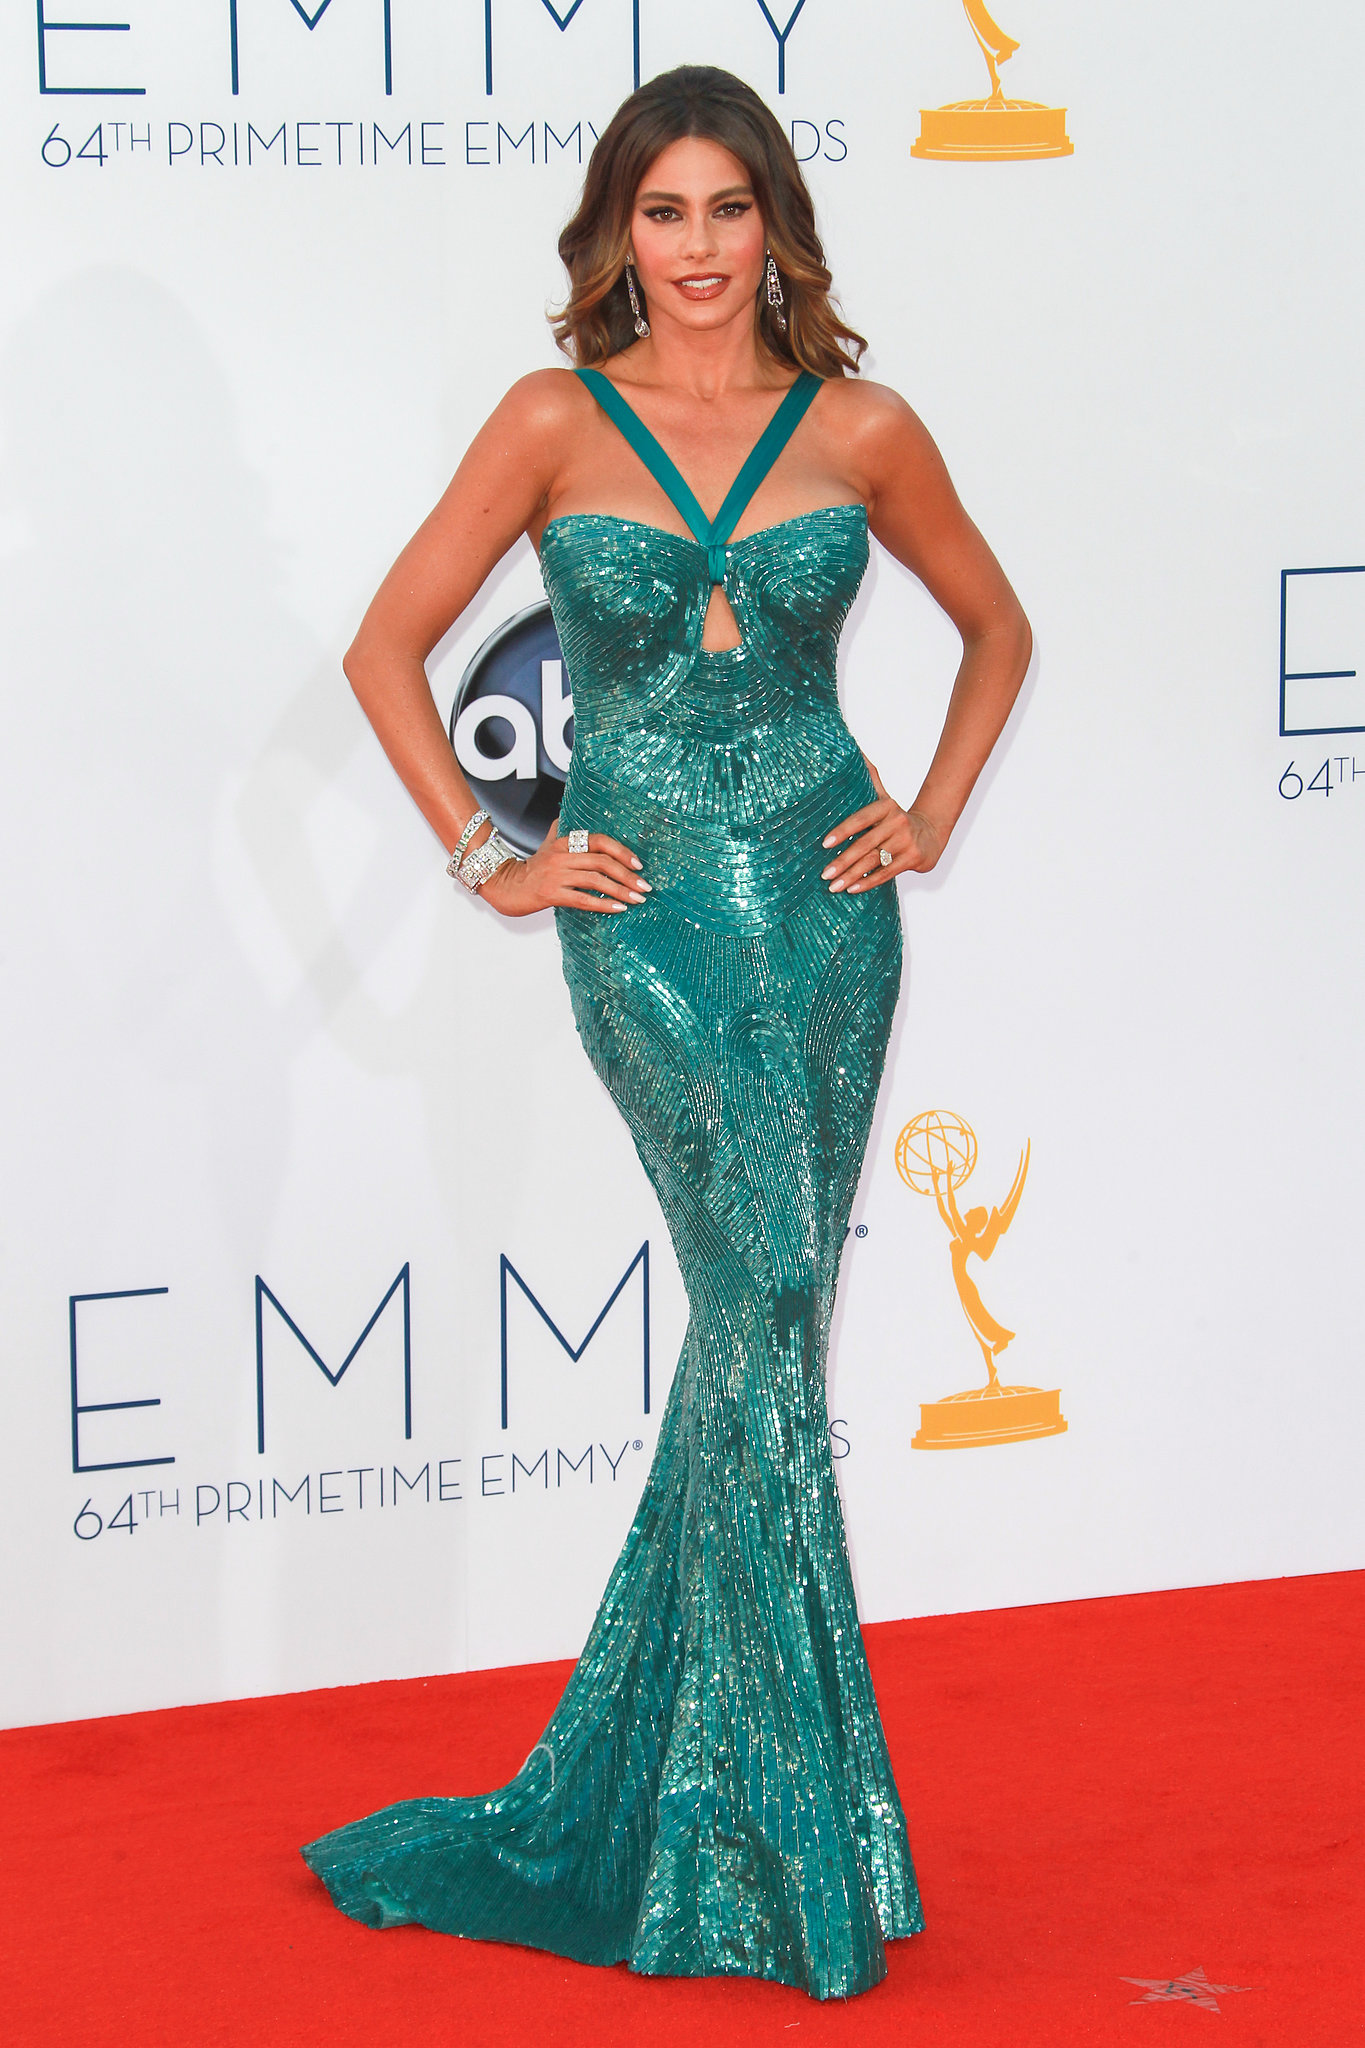 For the 2012 Emmy Awards, the Modern Family star turned up the heat in an allover teal, embellished Zuhair Murad creation. The gown showcas